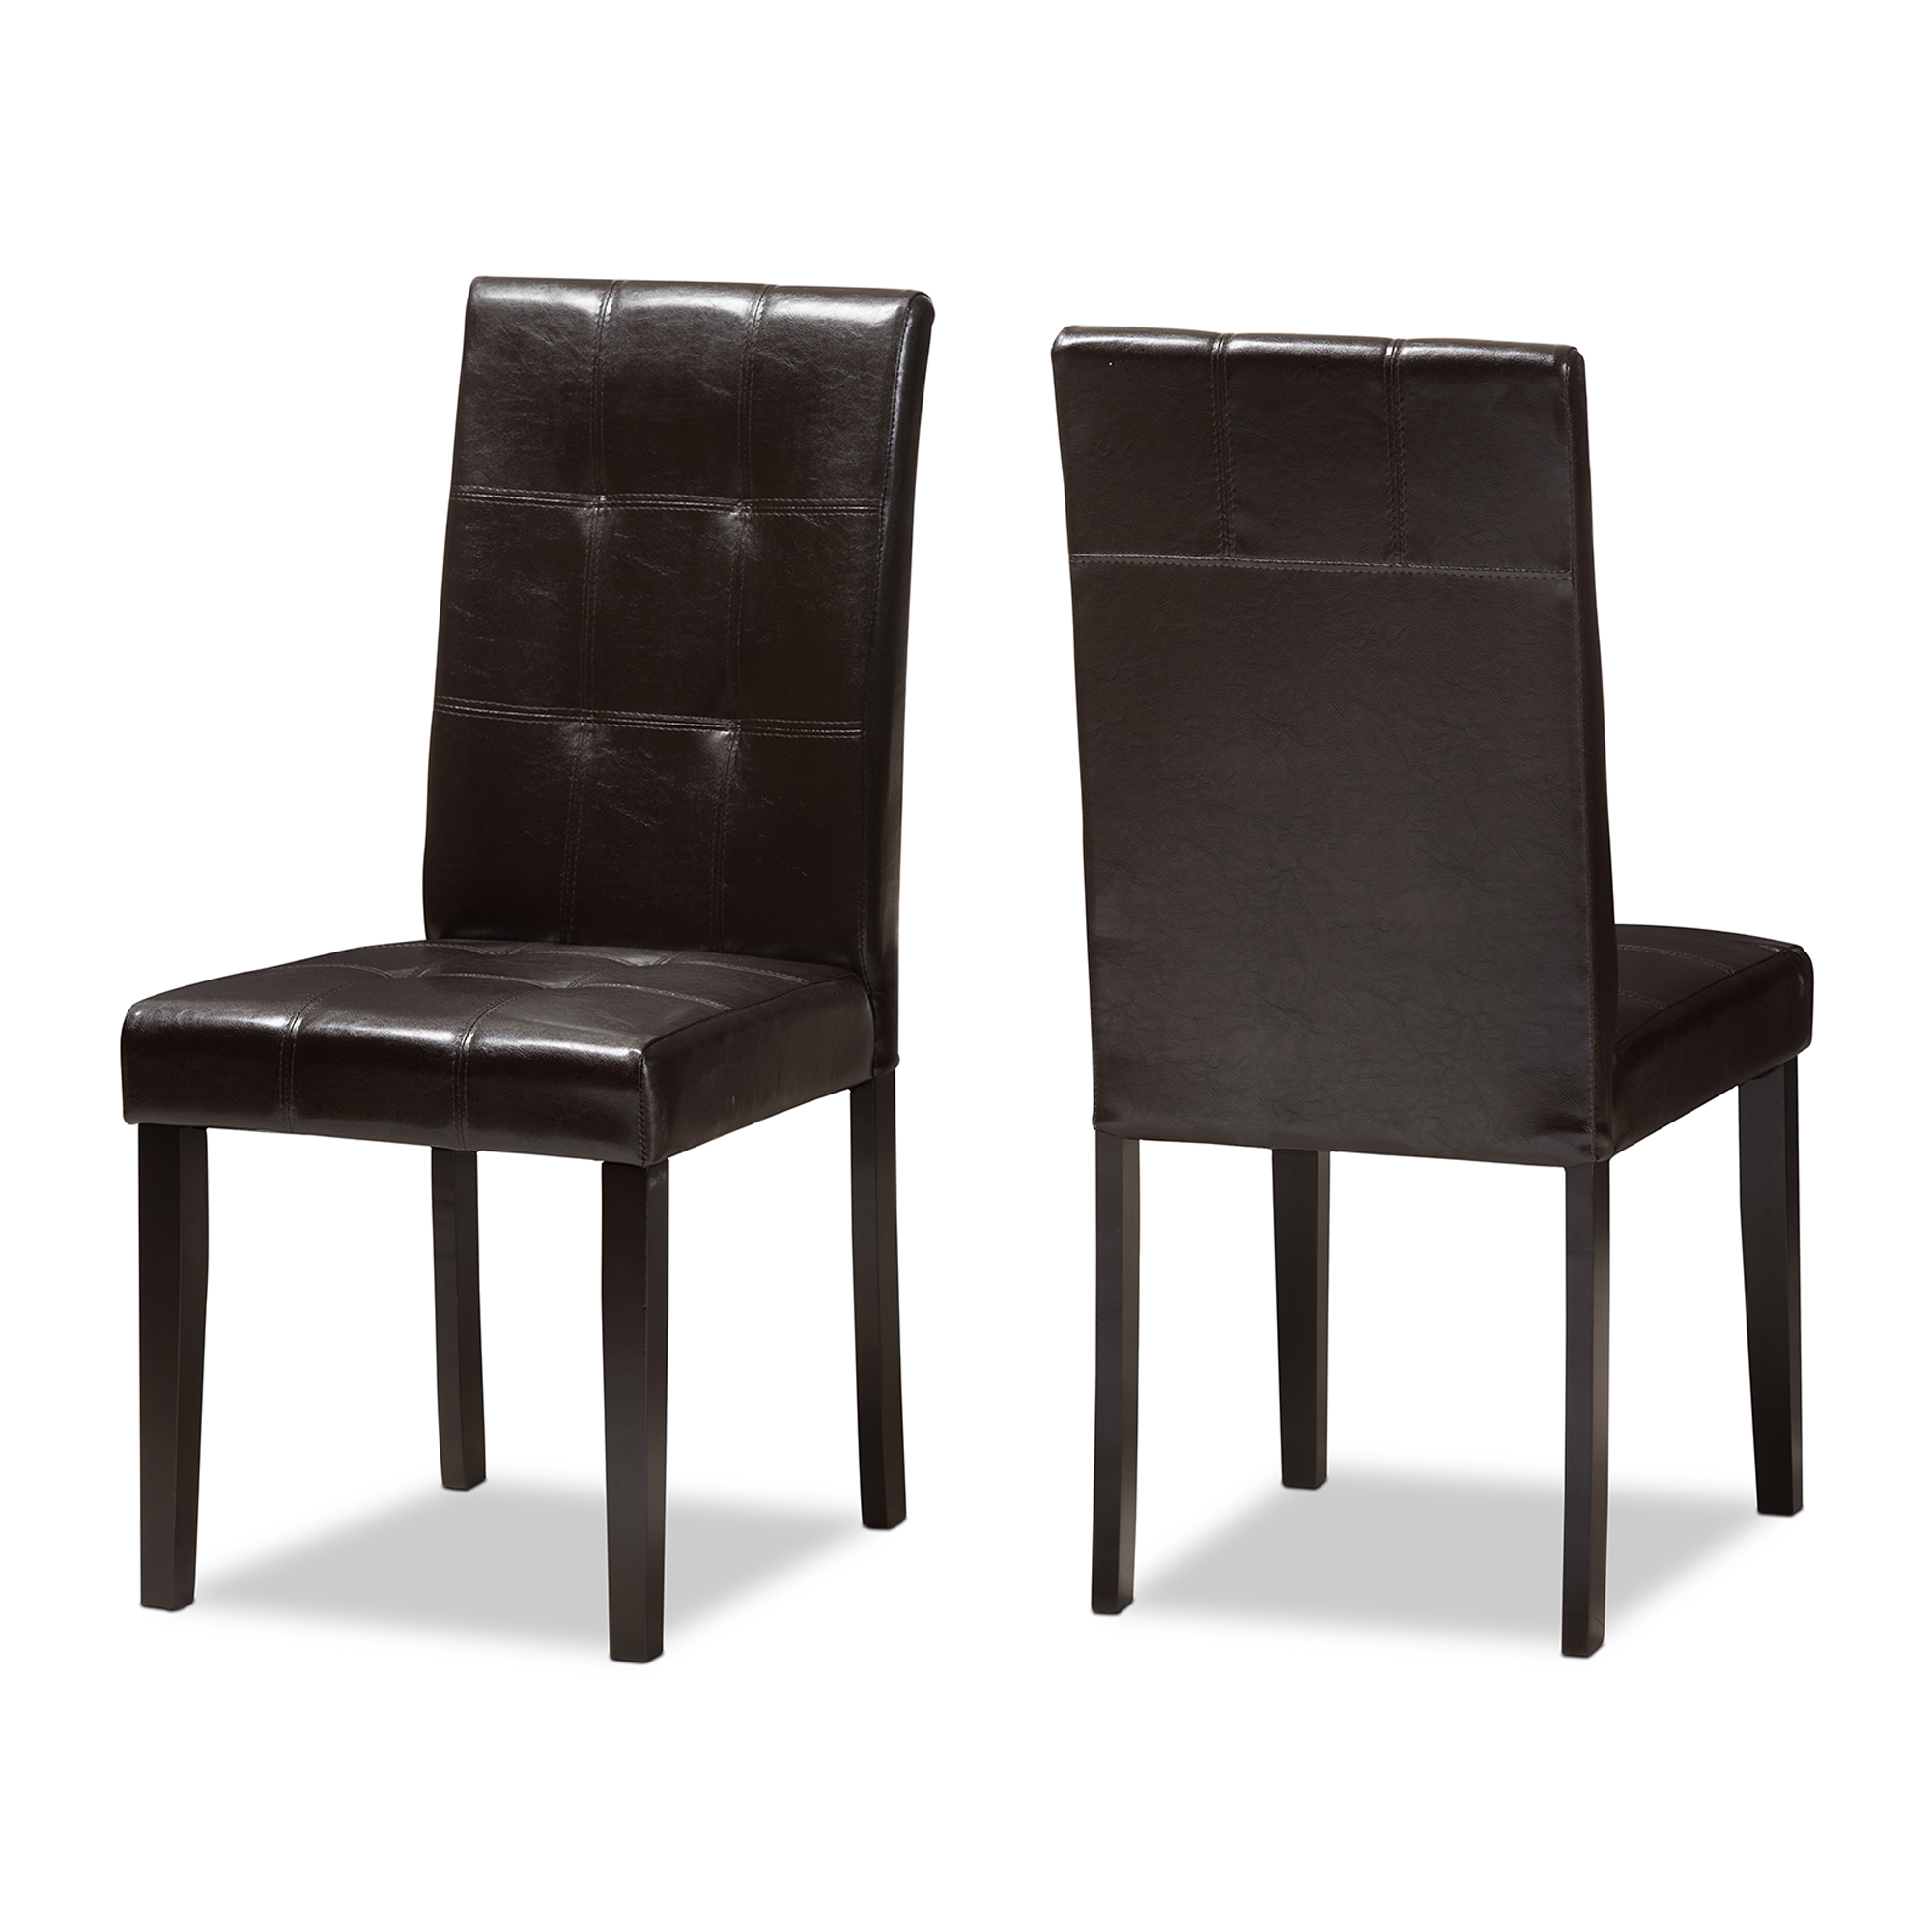 Baxton Studio Avery Modern And Contemporary Dark Brown Faux Leather  Upholstered Dining Chair Set Of 2